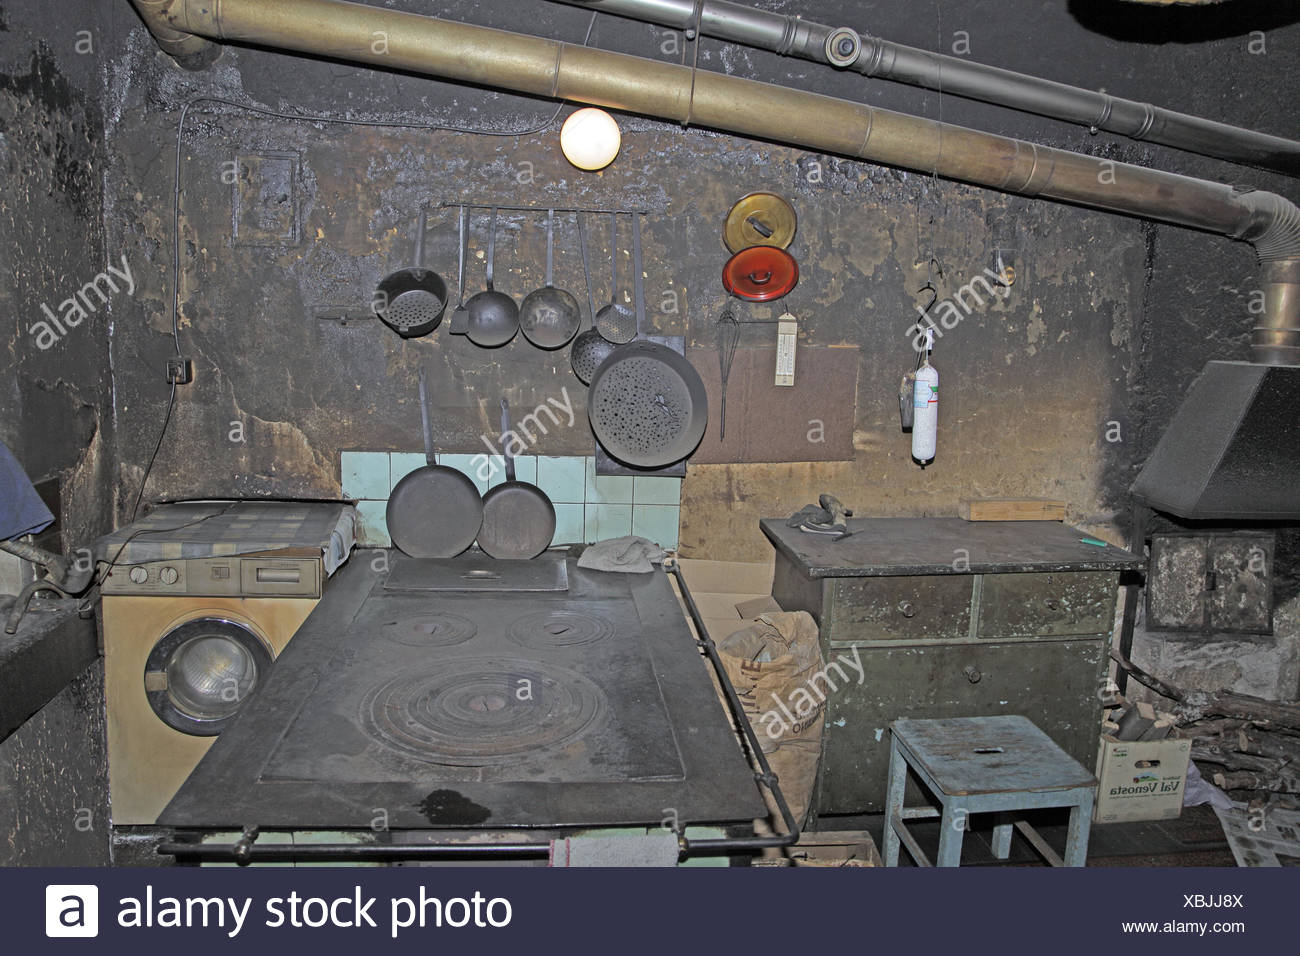 Smoke cuisine, old, Italy, South Tyrol, Ultental, Ulten, cuisine, focus, kiln, iron, iron, hearthstone, frying pans, several, hang, tennis racket, sieve, kitchen utensils, lids, chest drawers, stool, stove flue, washing machine, wall, black, becomes sooty - Stock Image